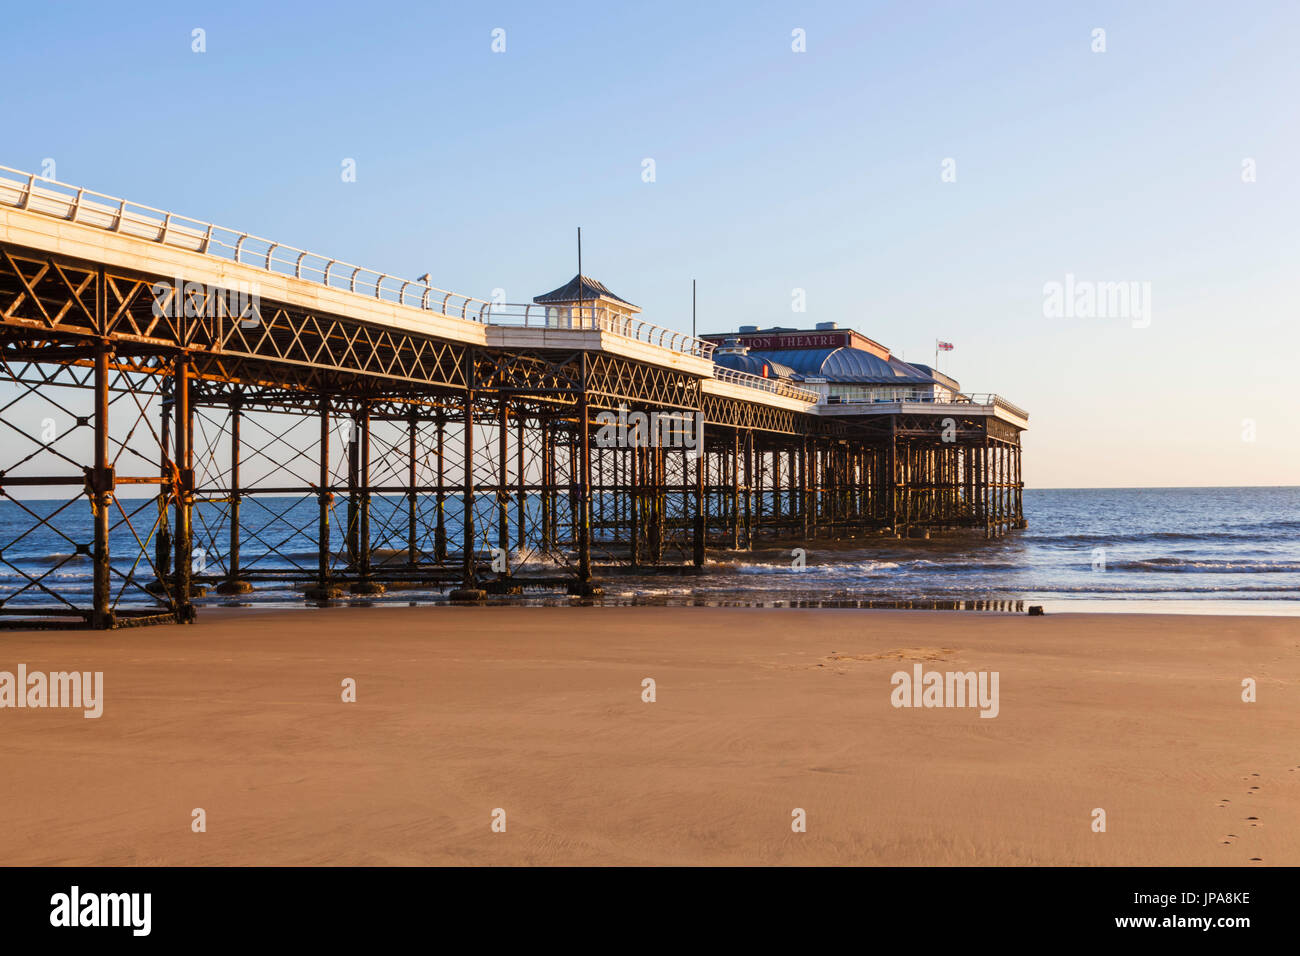 England, Norfolk, Cromer, Cromer Pier Stock Photo